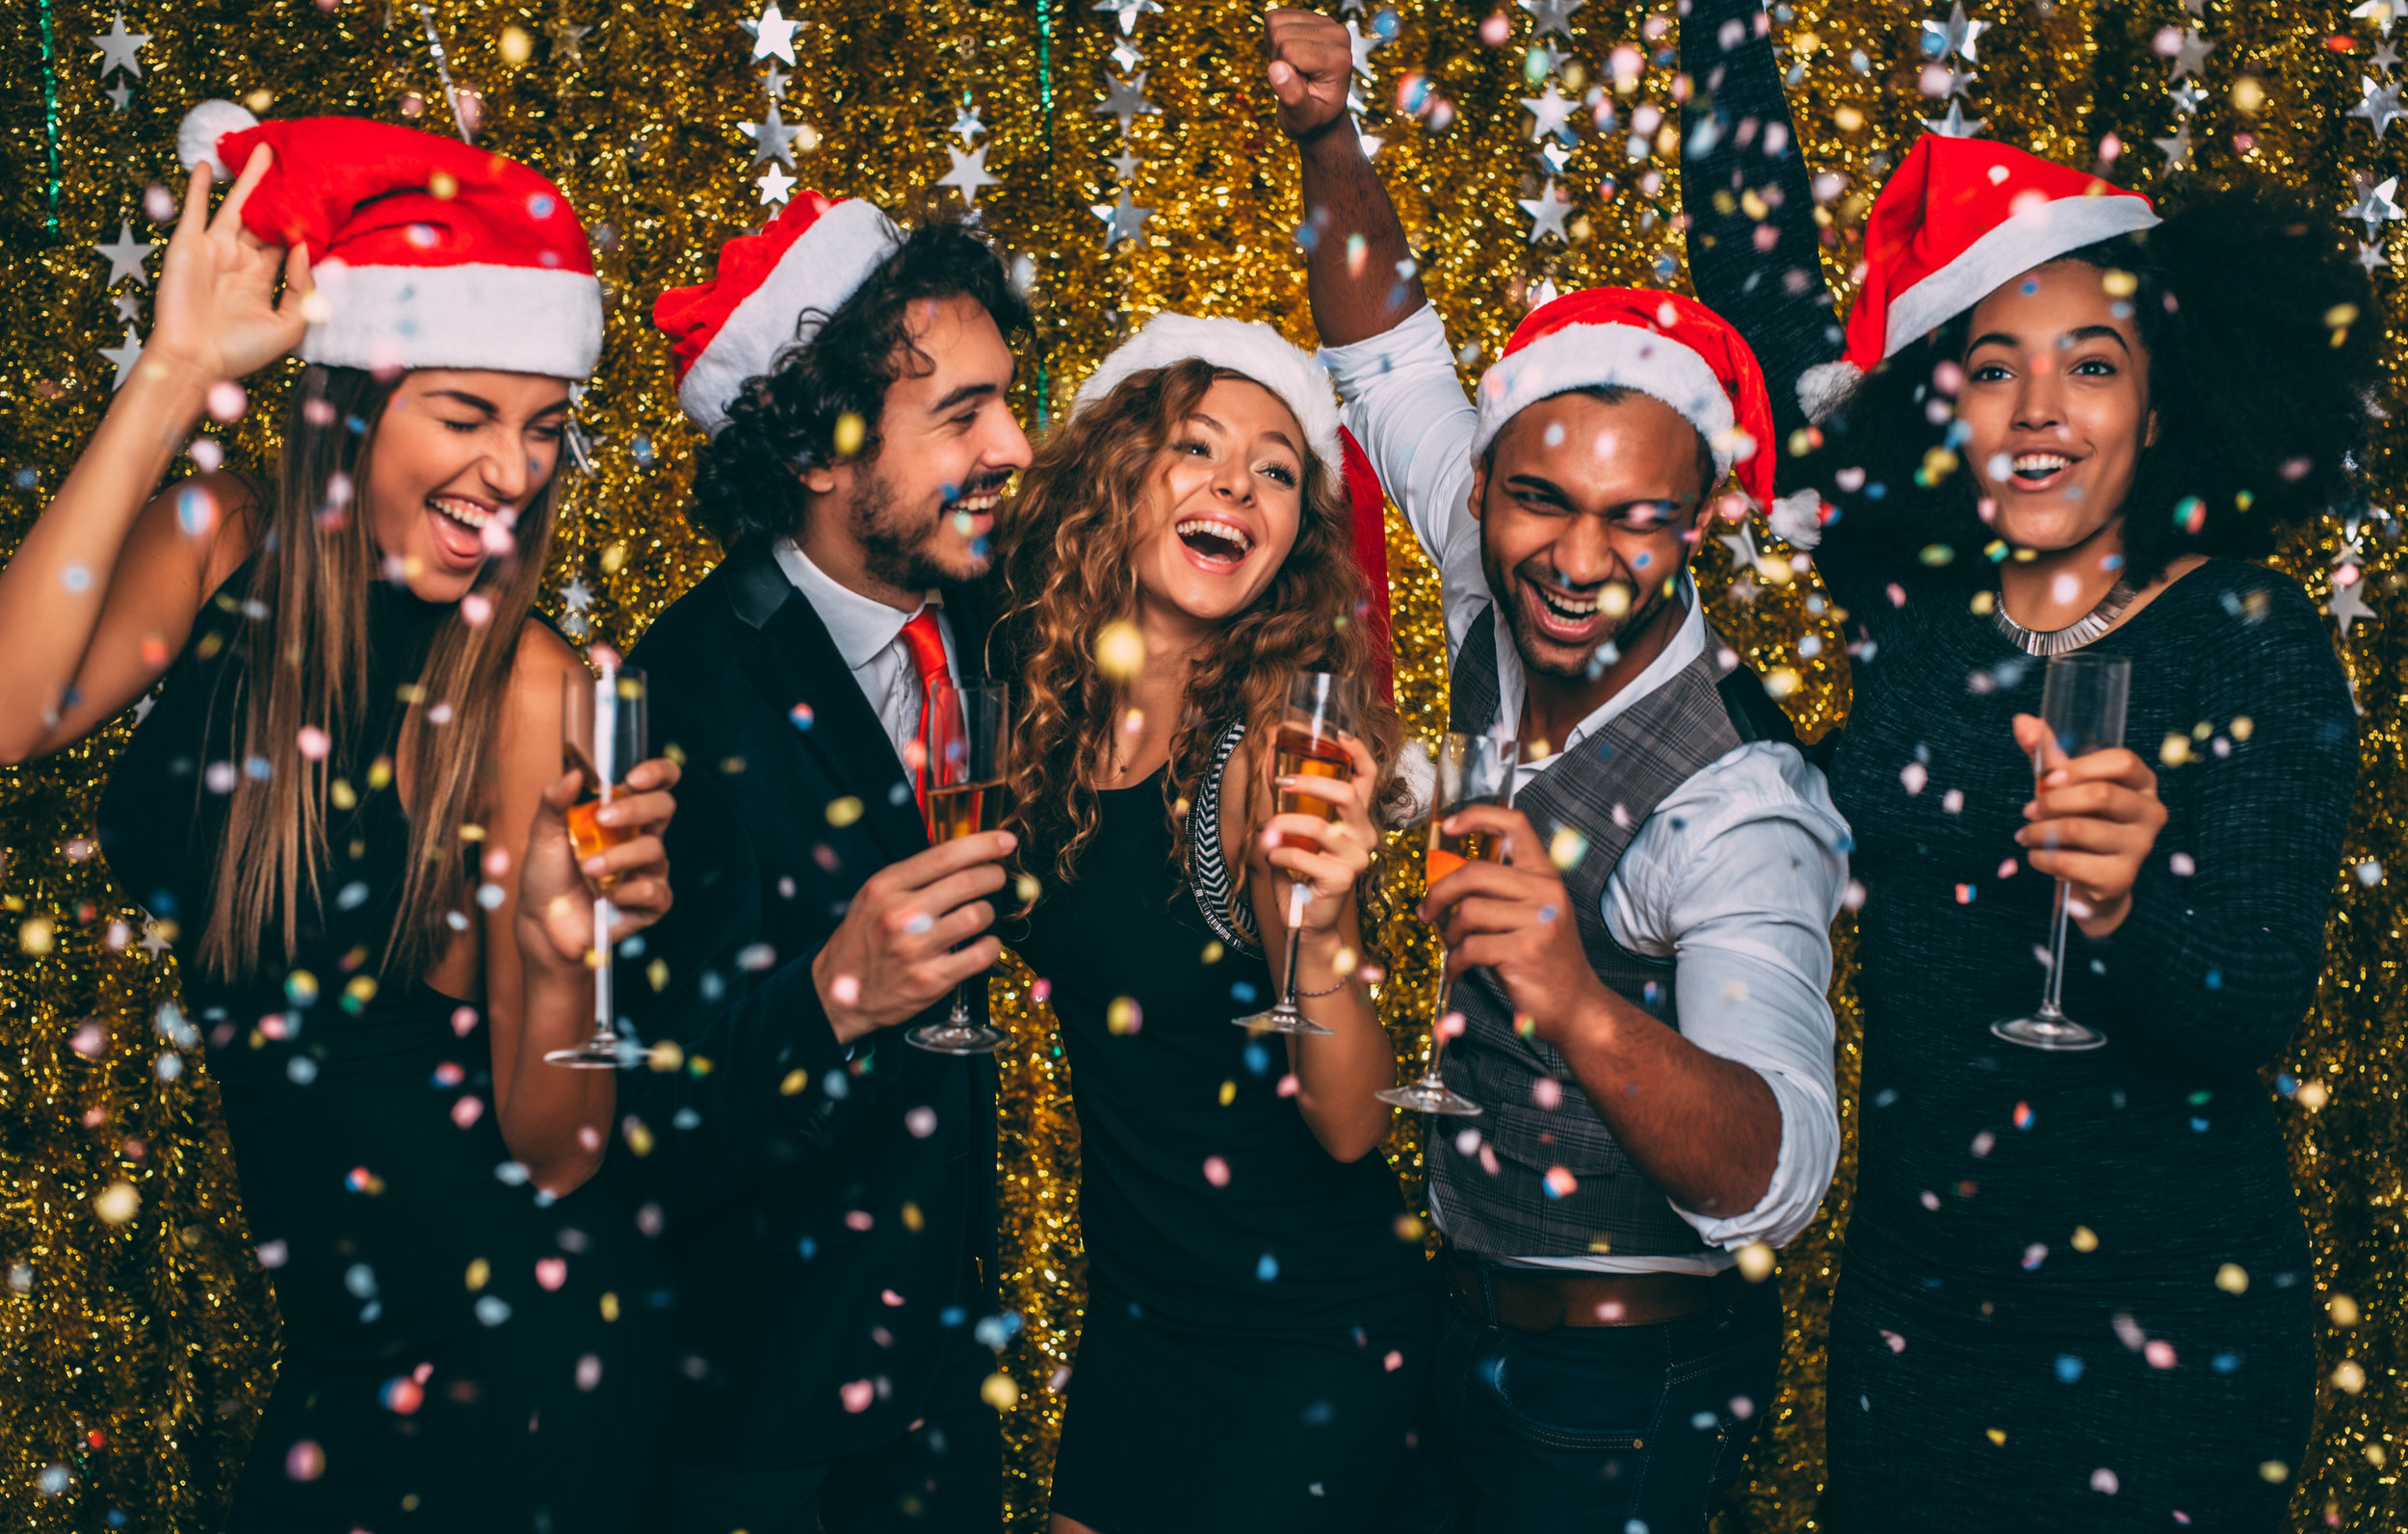 Holiday - Rock Out with the Commodore Ballroom! From lively company parties to festive social gatherings, we create holiday memories that last a lifetime. Whether you're looking to feature inflatable games, interactive performances, or an ice bar, host the most iconic event of the season with us!